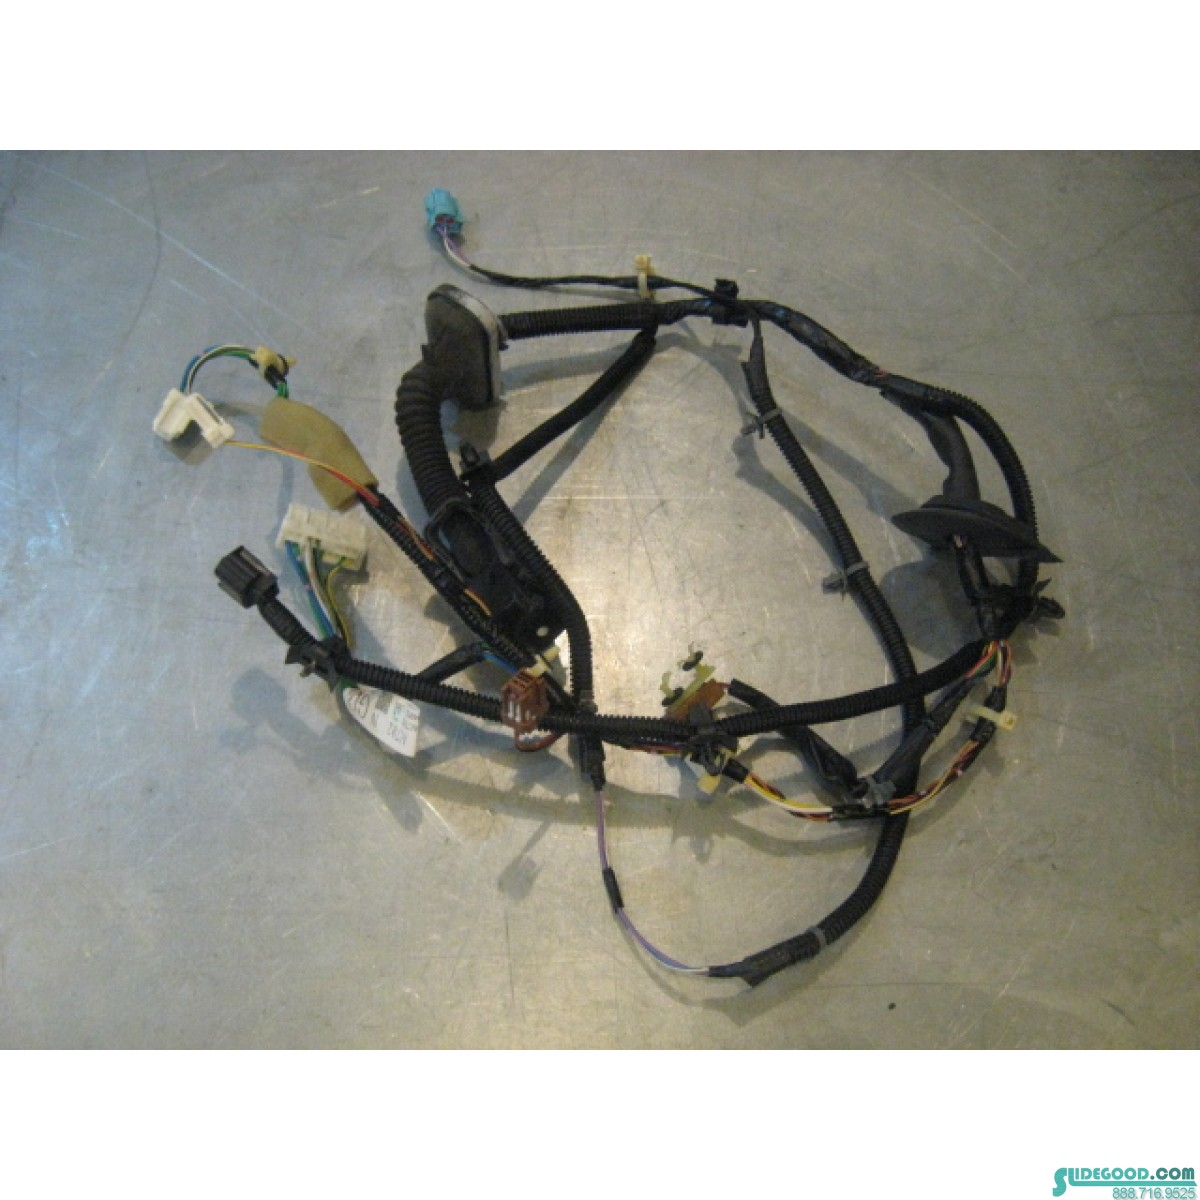 Wiring Harness For Infiniti G on infiniti g35 lug nuts, infiniti g35 turbo manifold, infiniti g35 manual, infiniti g35 master cylinder, infiniti g35 front end, infiniti g35 throttle position sensor, infiniti g35 timing marks, infiniti g35 air filter, infiniti g35 gauges, infiniti g35 door lock actuator, infiniti g35 starter, infiniti g35 frame, infiniti g35 flywheel, infiniti g35 exhaust system, infiniti g35 ignition switch, infiniti g35 shifter, infiniti g35 temp sensor, infiniti g35 fuel filter, infiniti g35 hid ballast, infiniti g35 fuel tank,